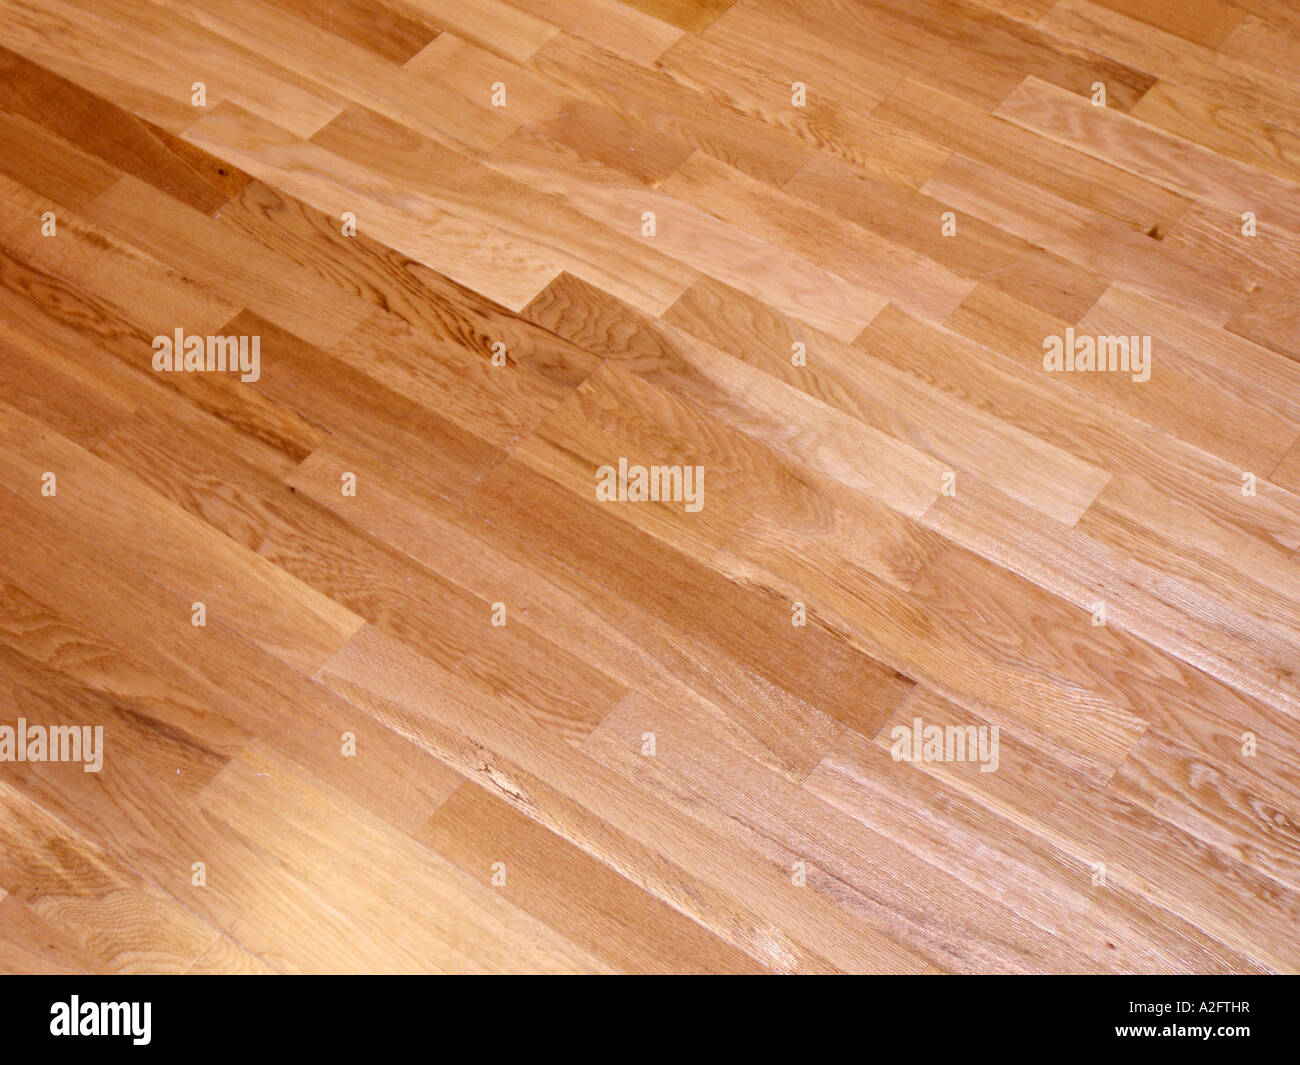 Laminate Wood Wooden Floor Flooring Oak Timber Trendy Stock